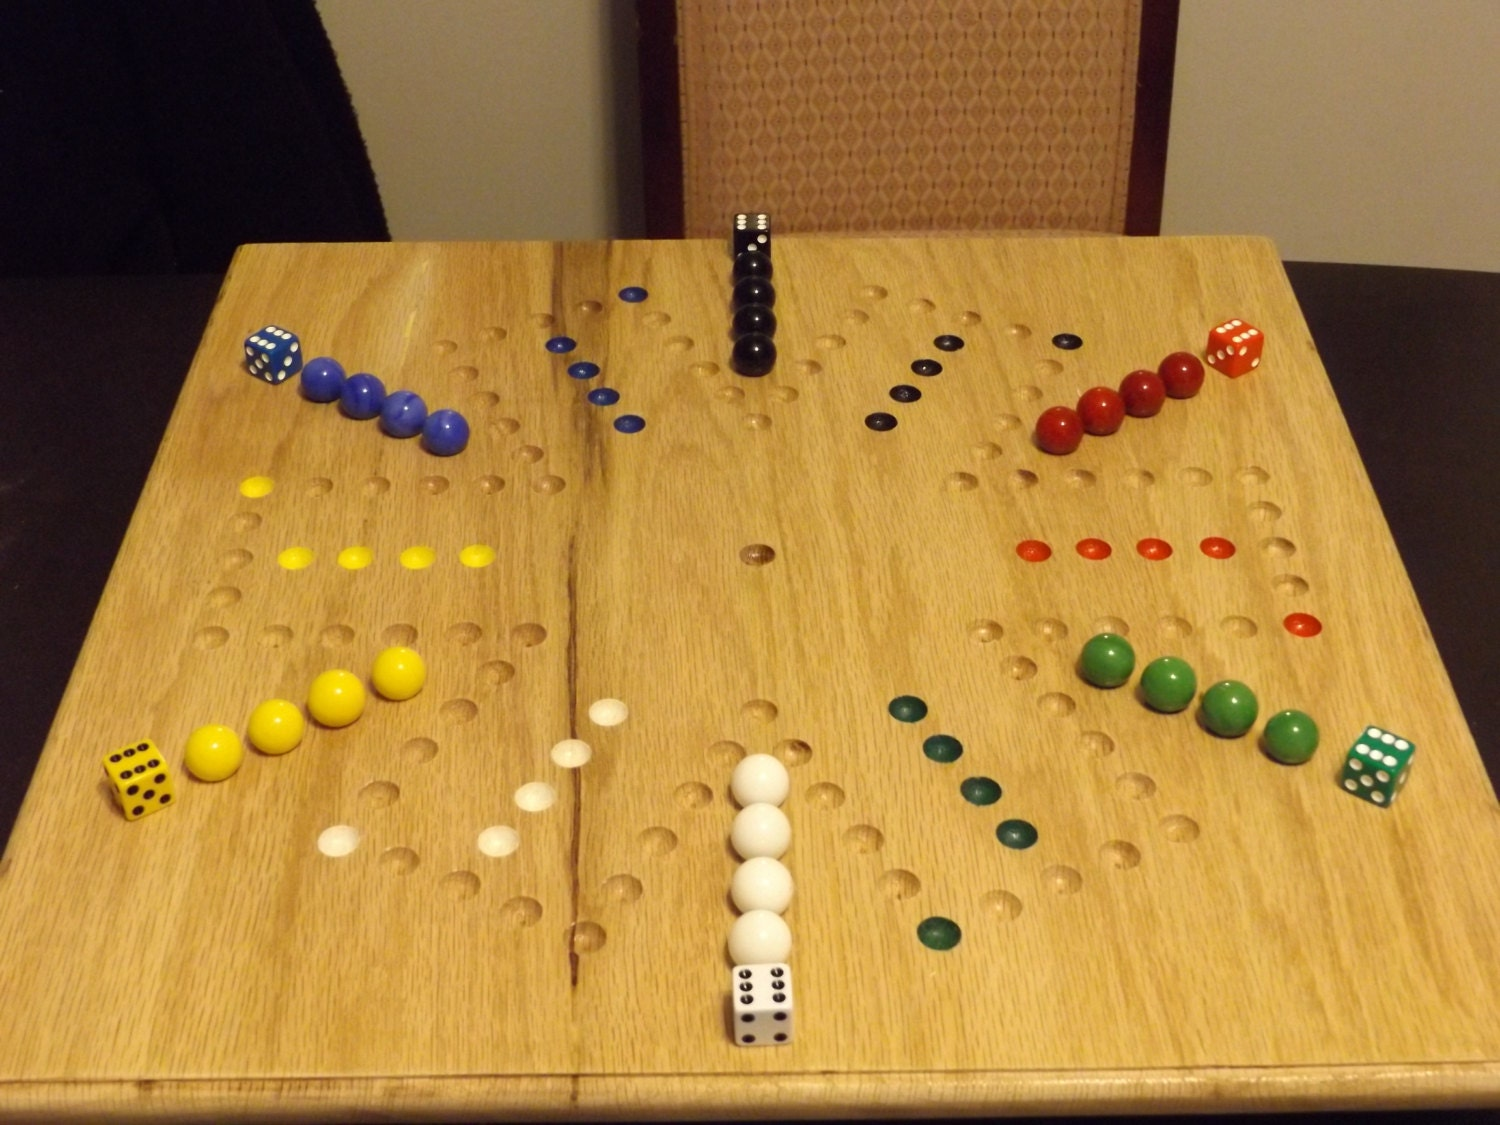 Wooden Aggravation Board Game Il100xn100jpg 100100 Pixels Marble